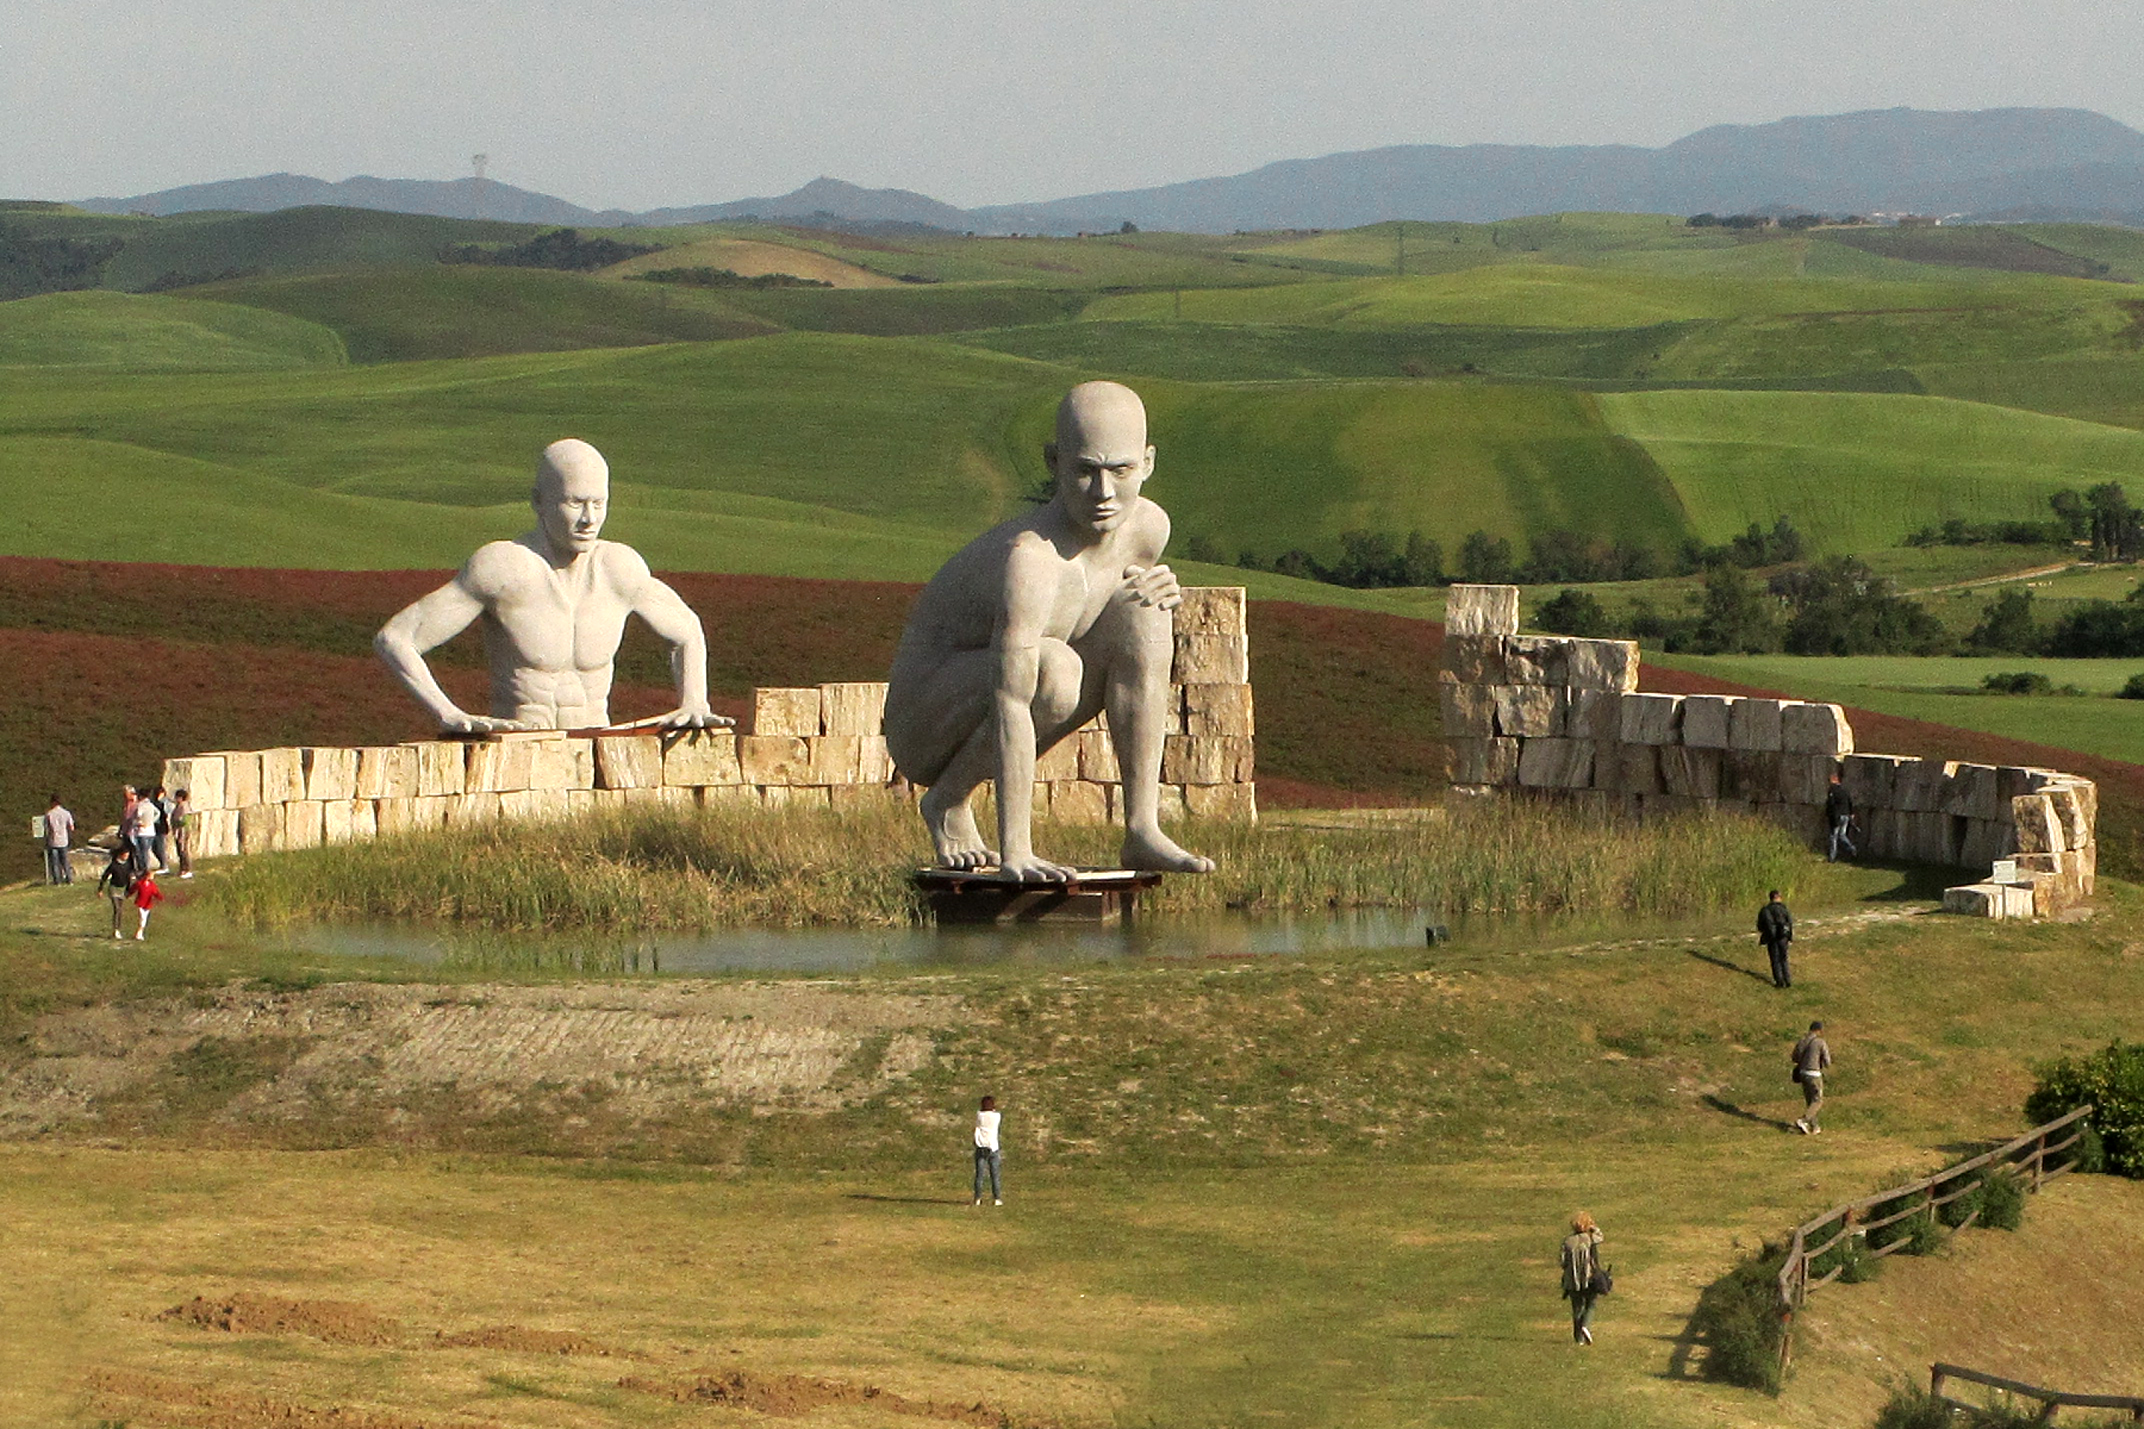 The Giants did exist: colossal skeletons all over the world